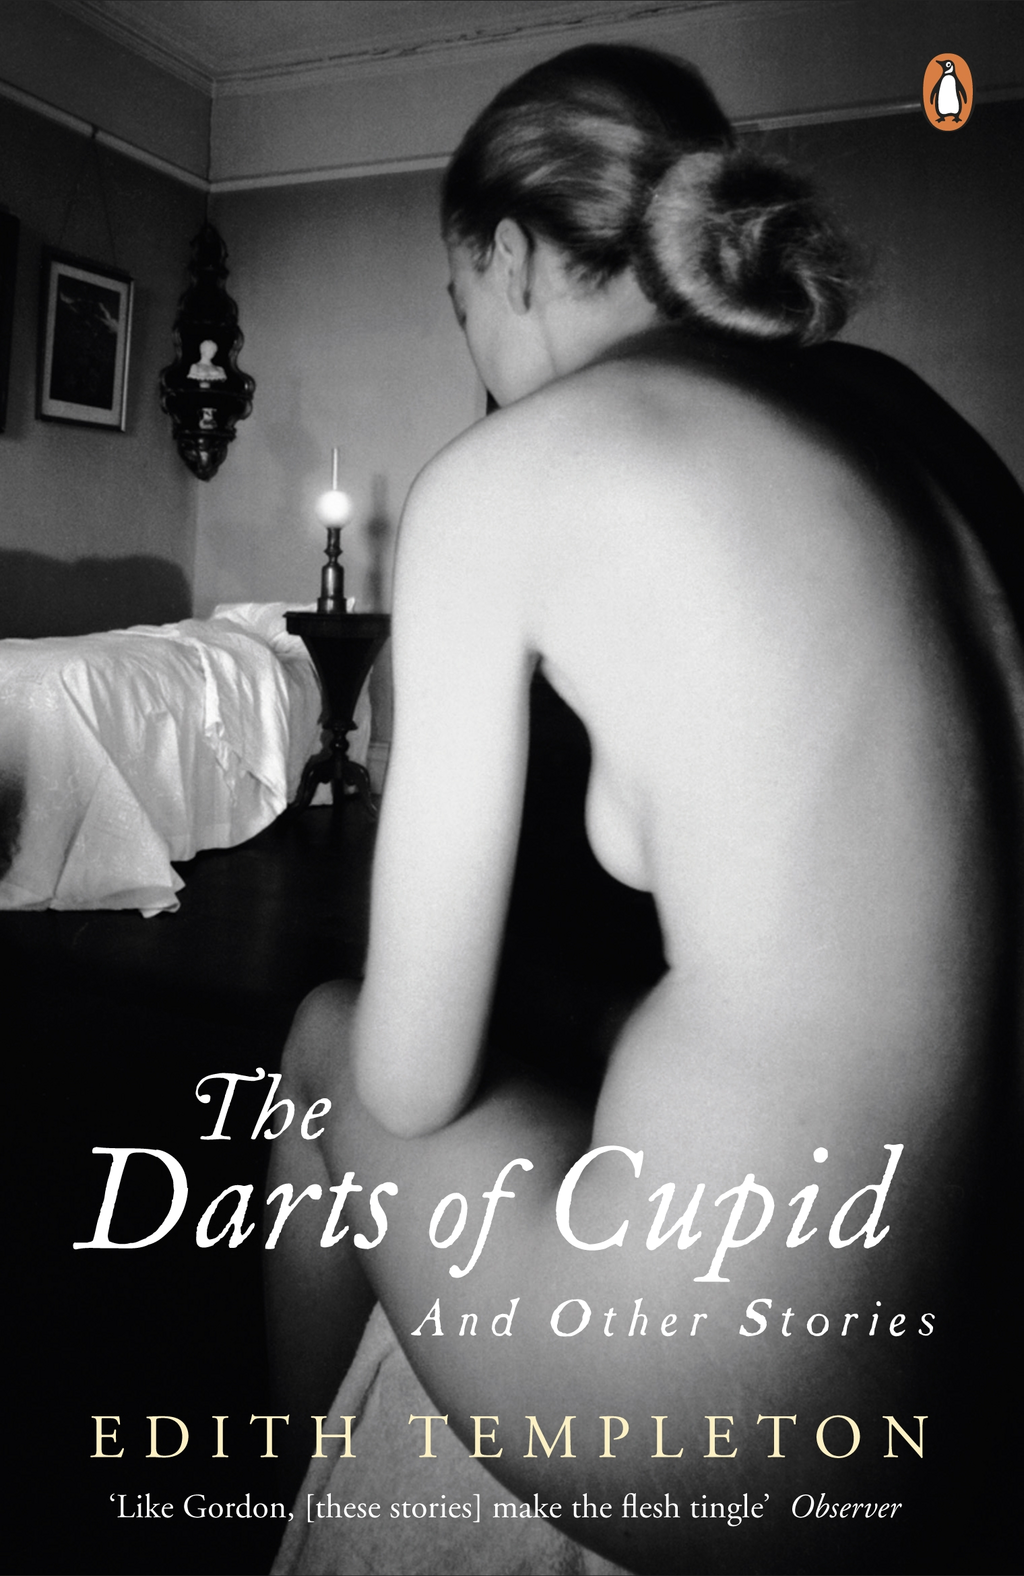 The Darts of Cupid And Other Stories